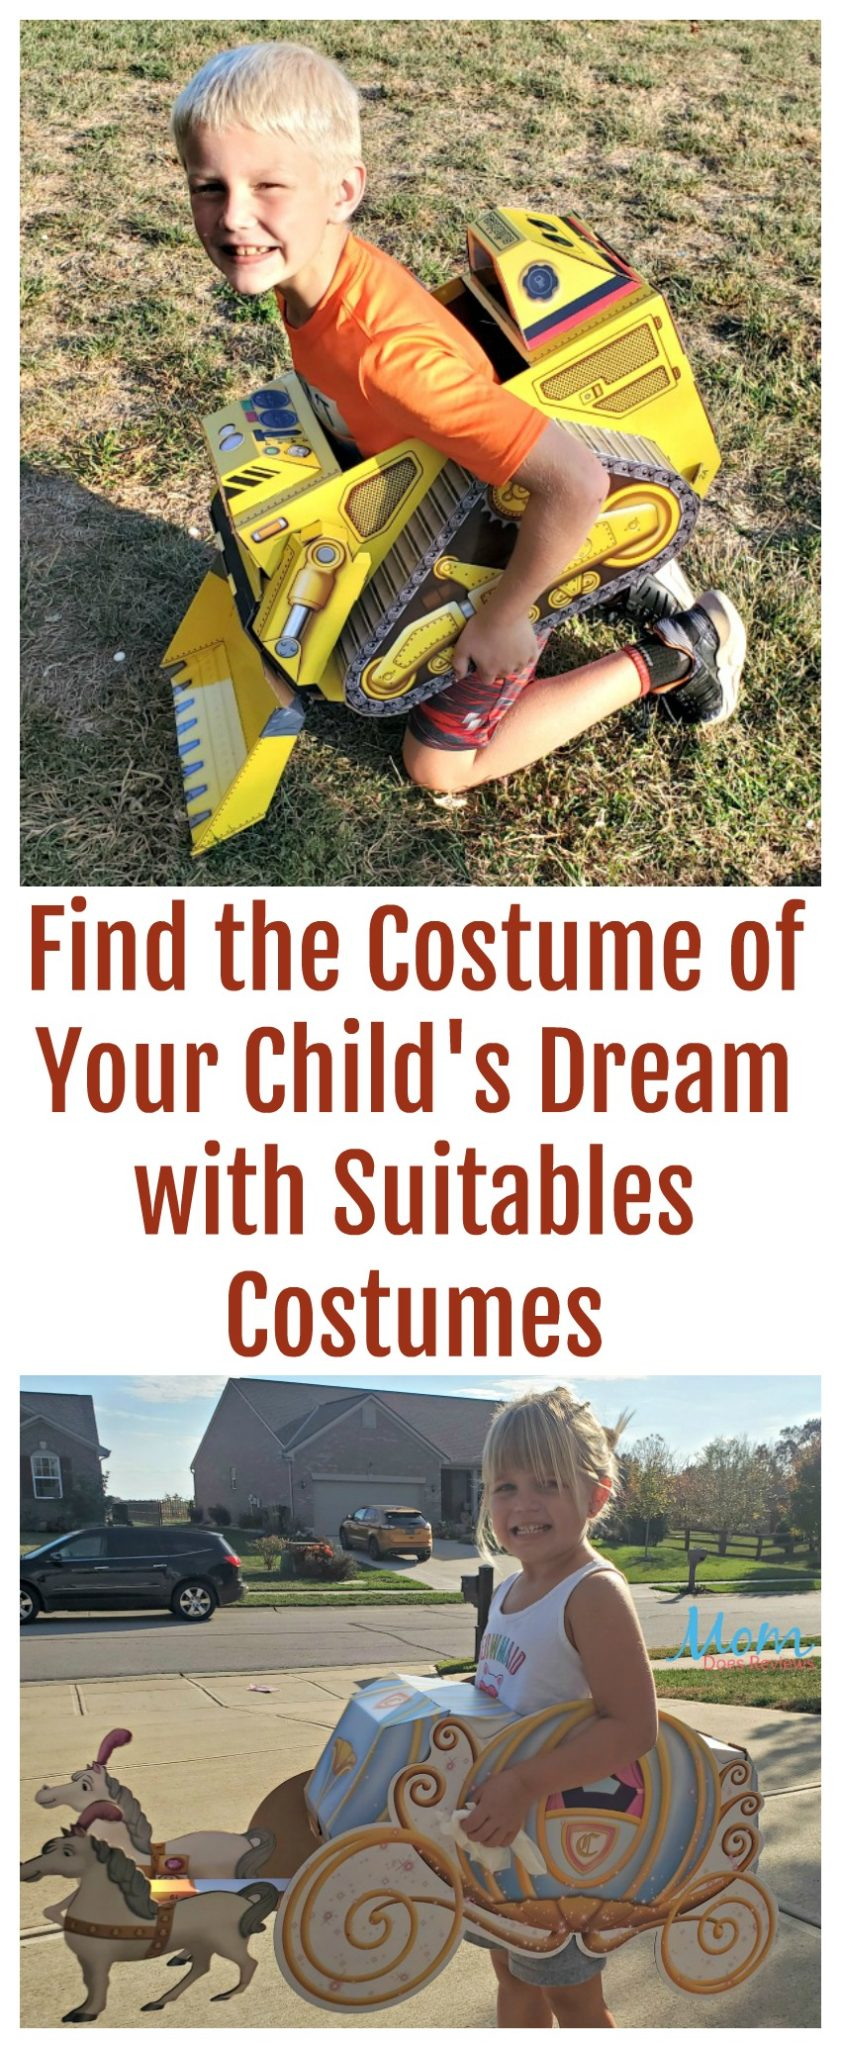 Find the Costume of Your Child's Dream with Suitables Costumes